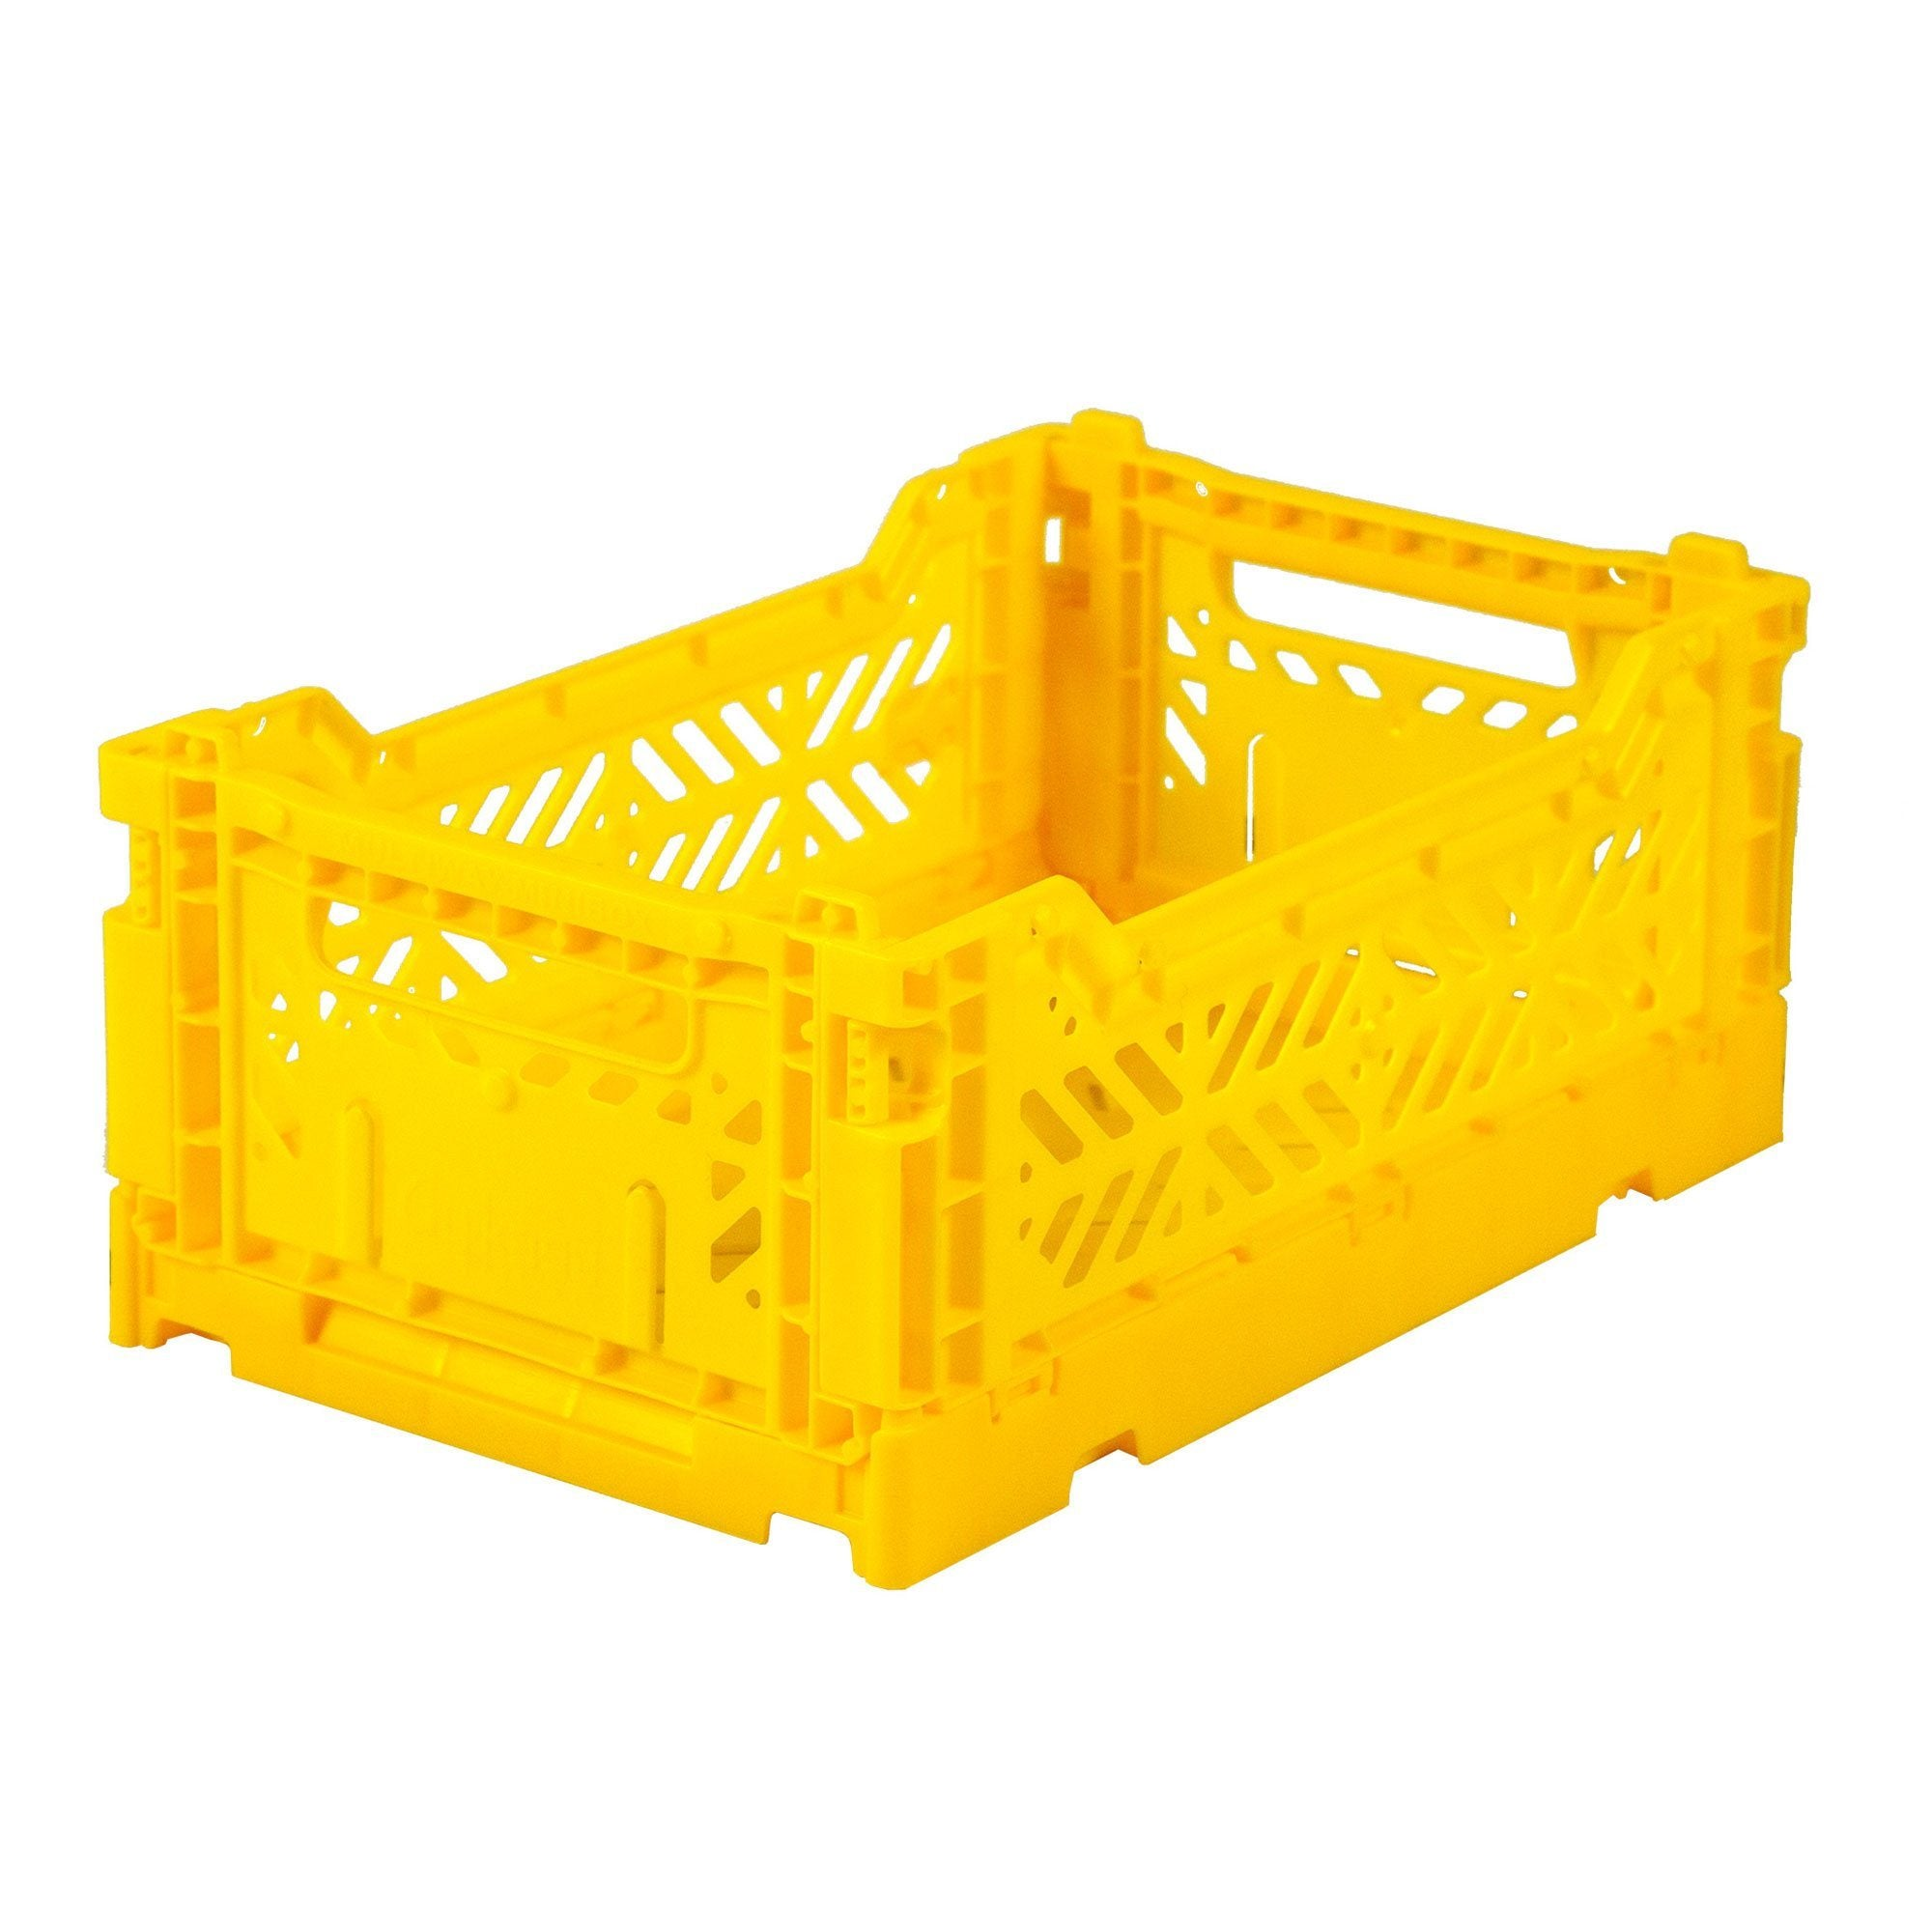 Aykasa Mini Folding Crate (Yellow)